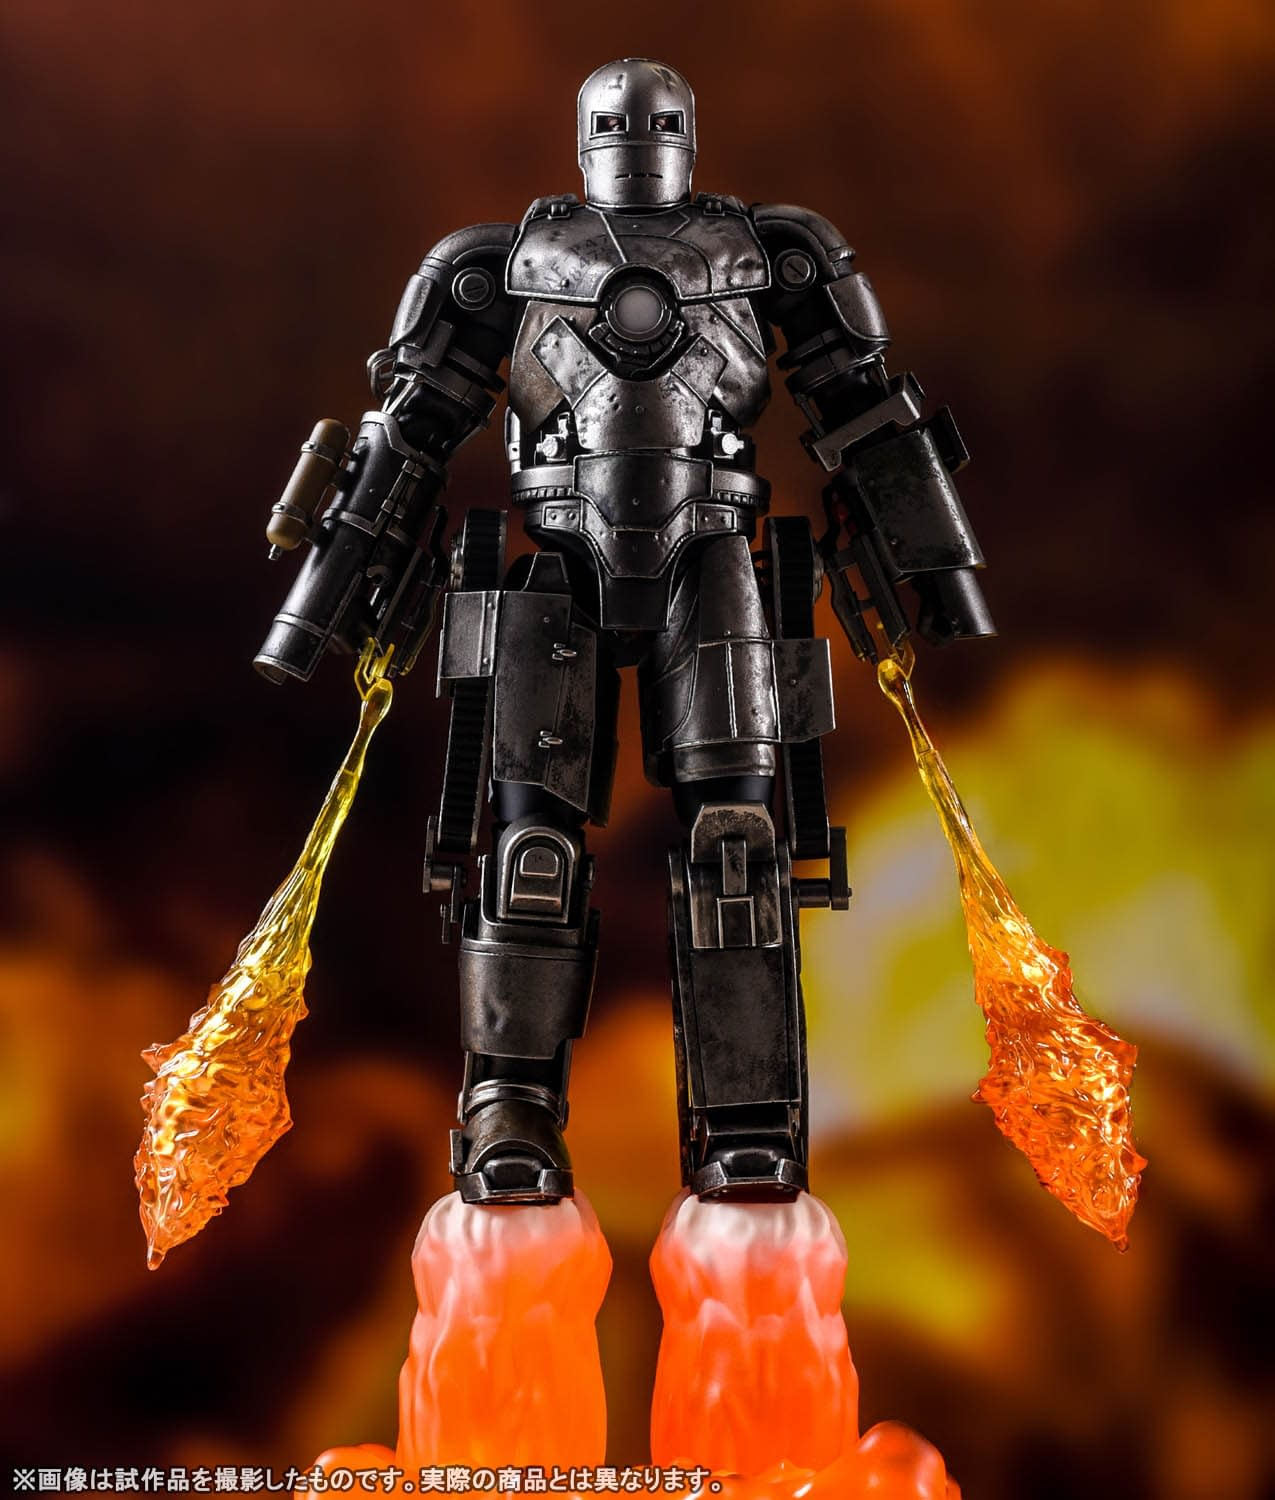 Iron Man Returns to the Beginning With New Figure From S.H. Figuarts